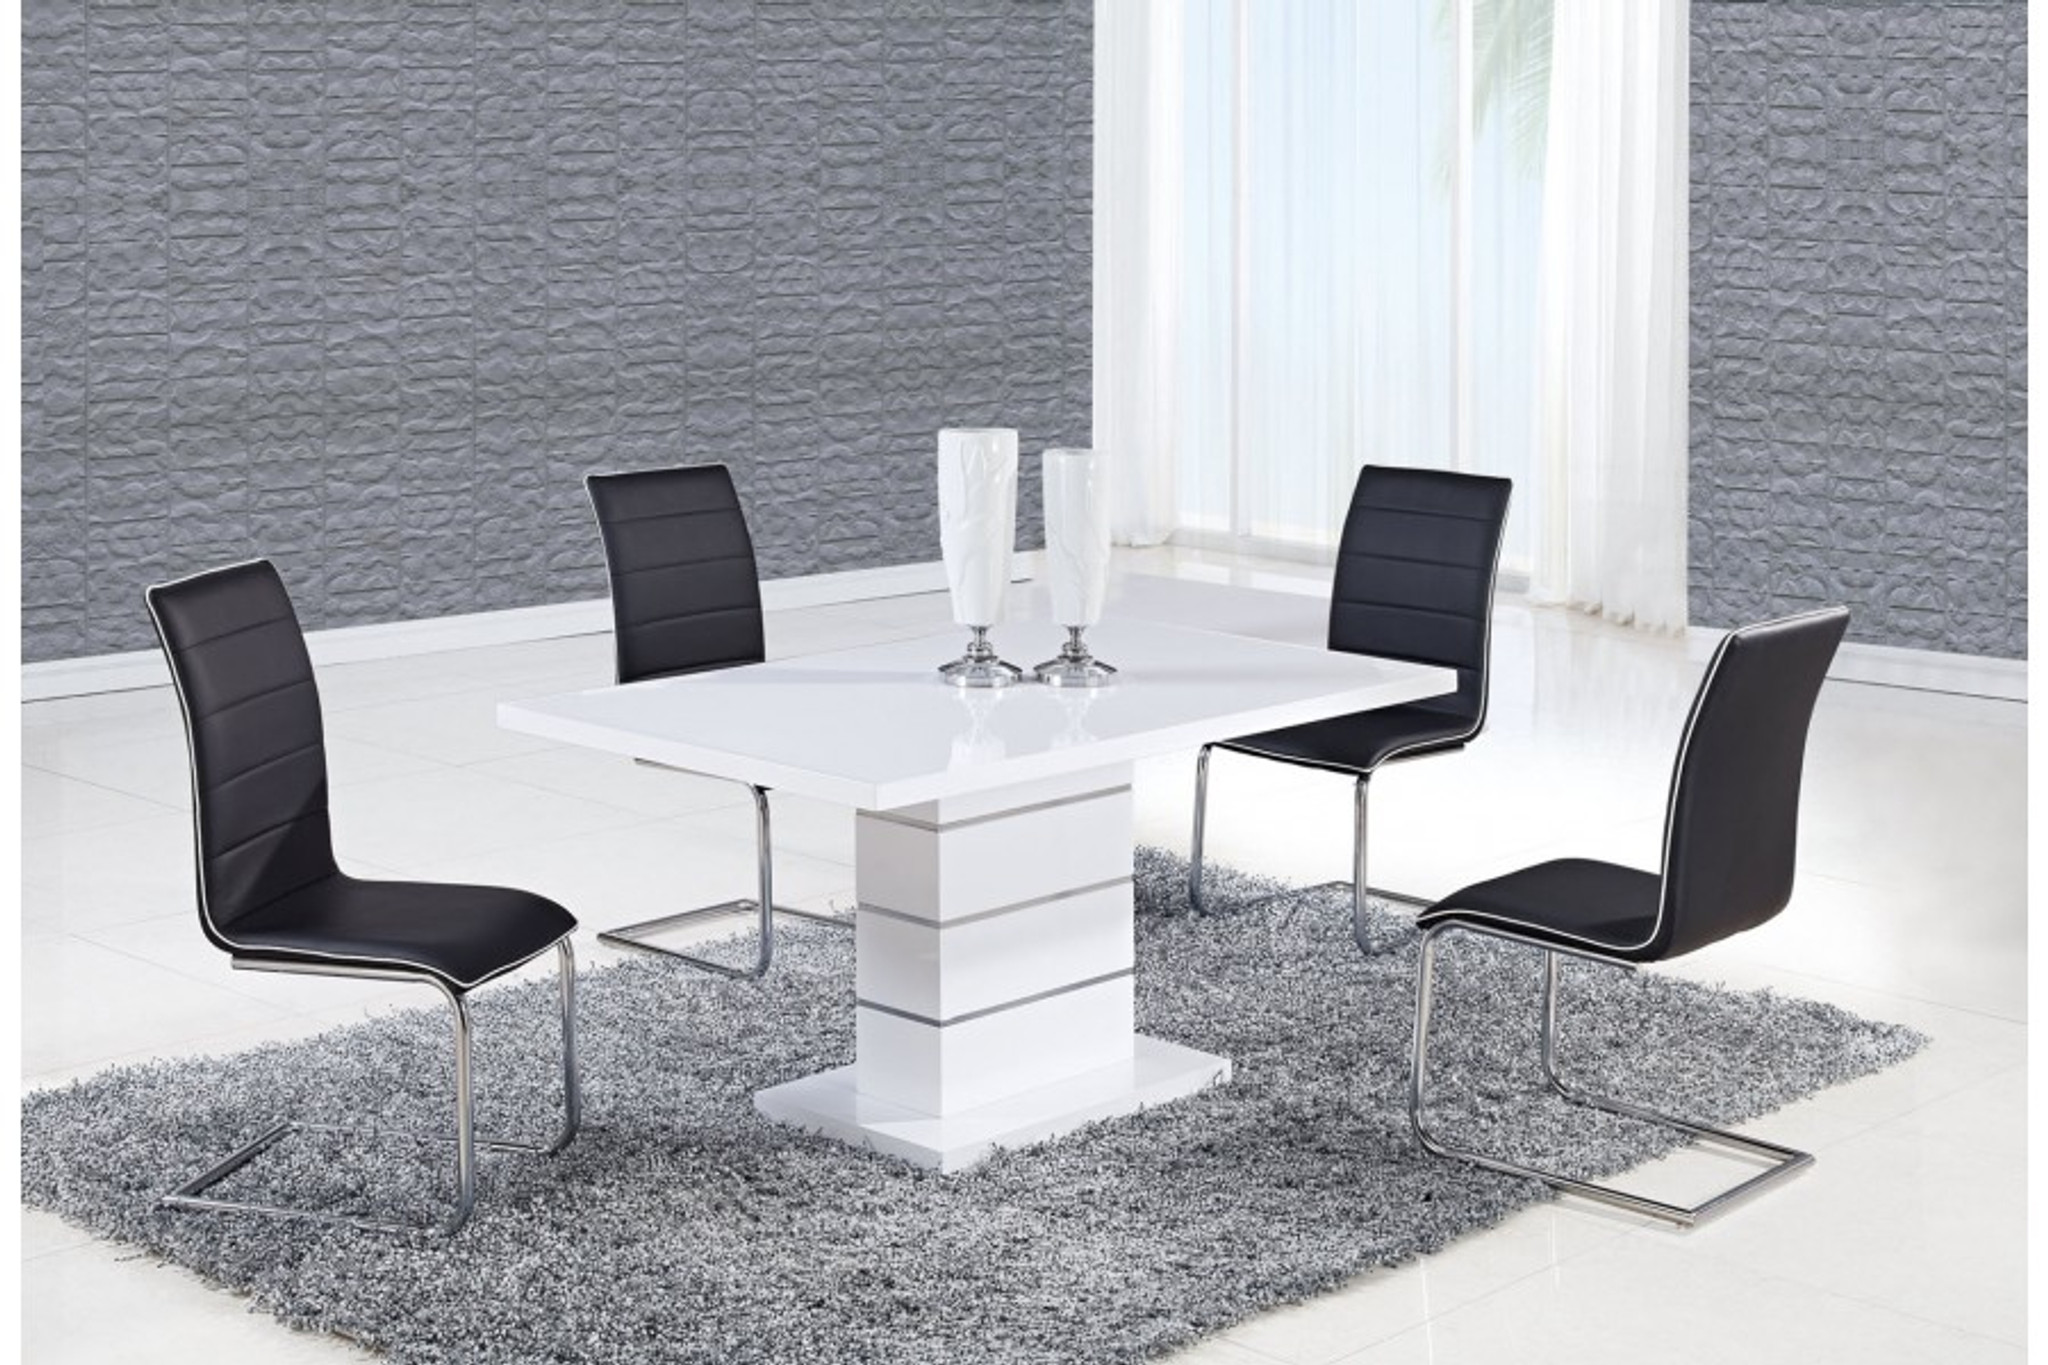 Merveilleux ALEXIA 5 PCS CONTEMPORARY SET 4 BLACK CHAIRS AND WHITE MODERN TABLE   Kassa  Mall Home Furniture